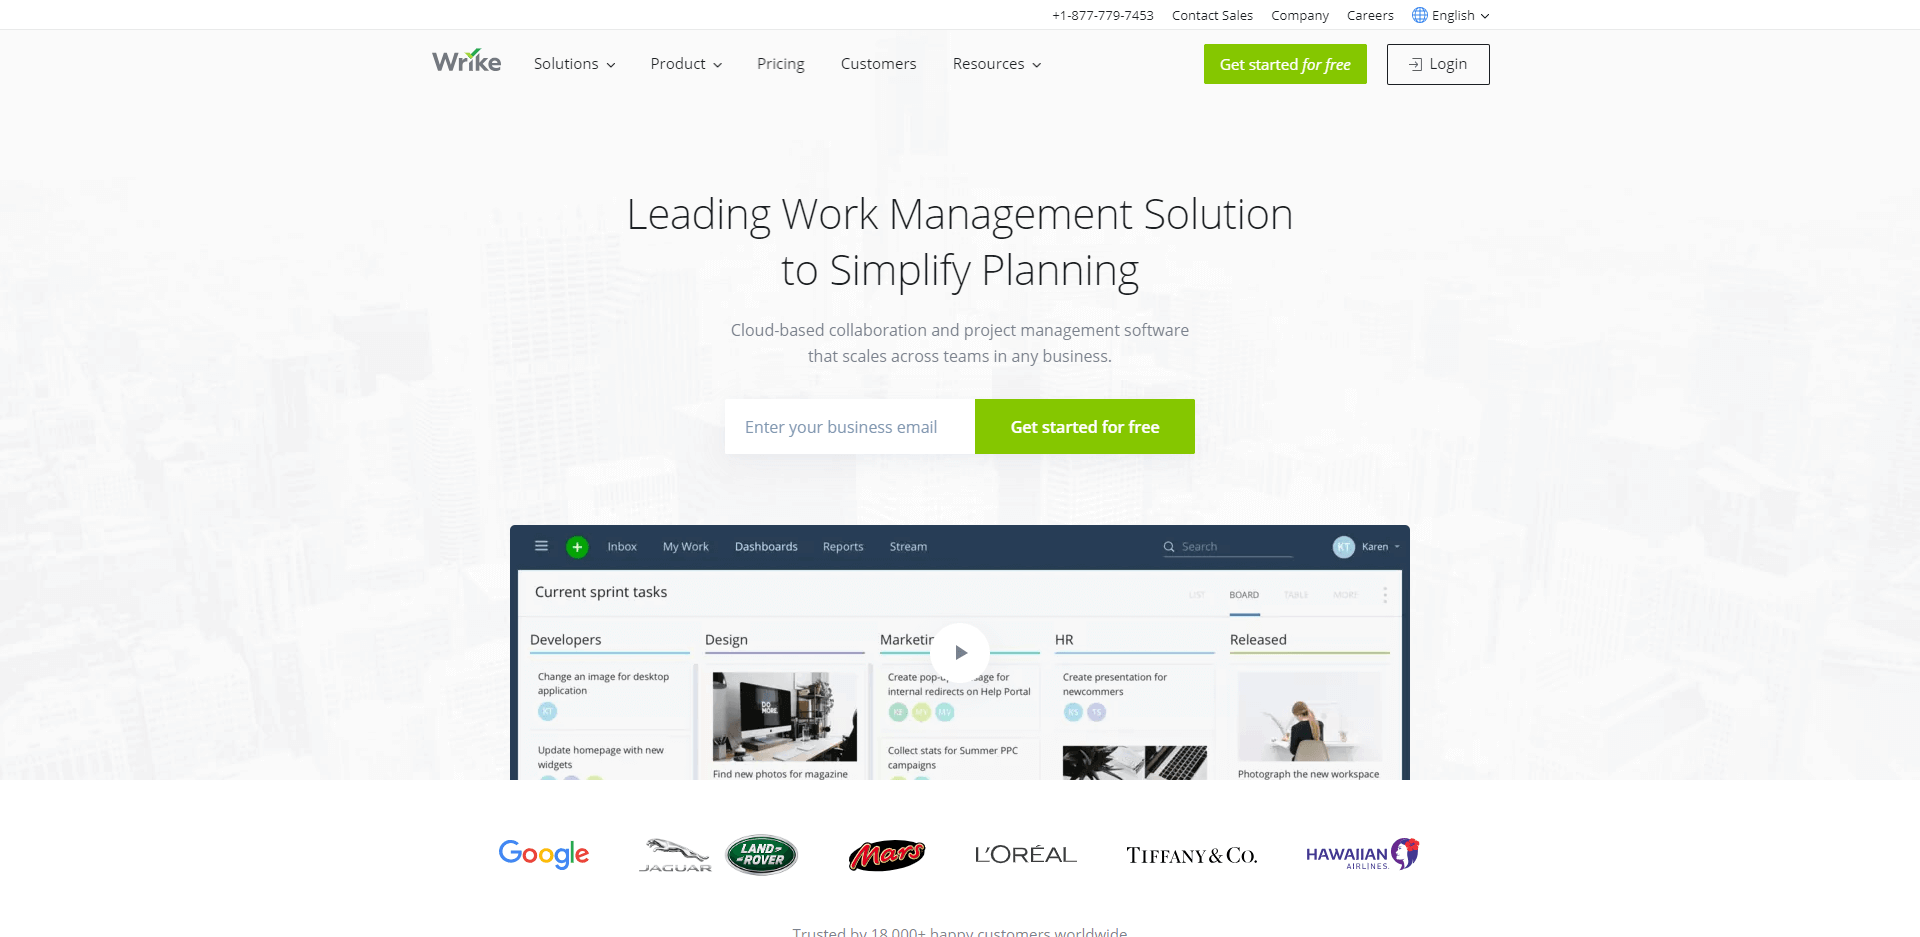 Wrike is the leading work management solution to simplify planning